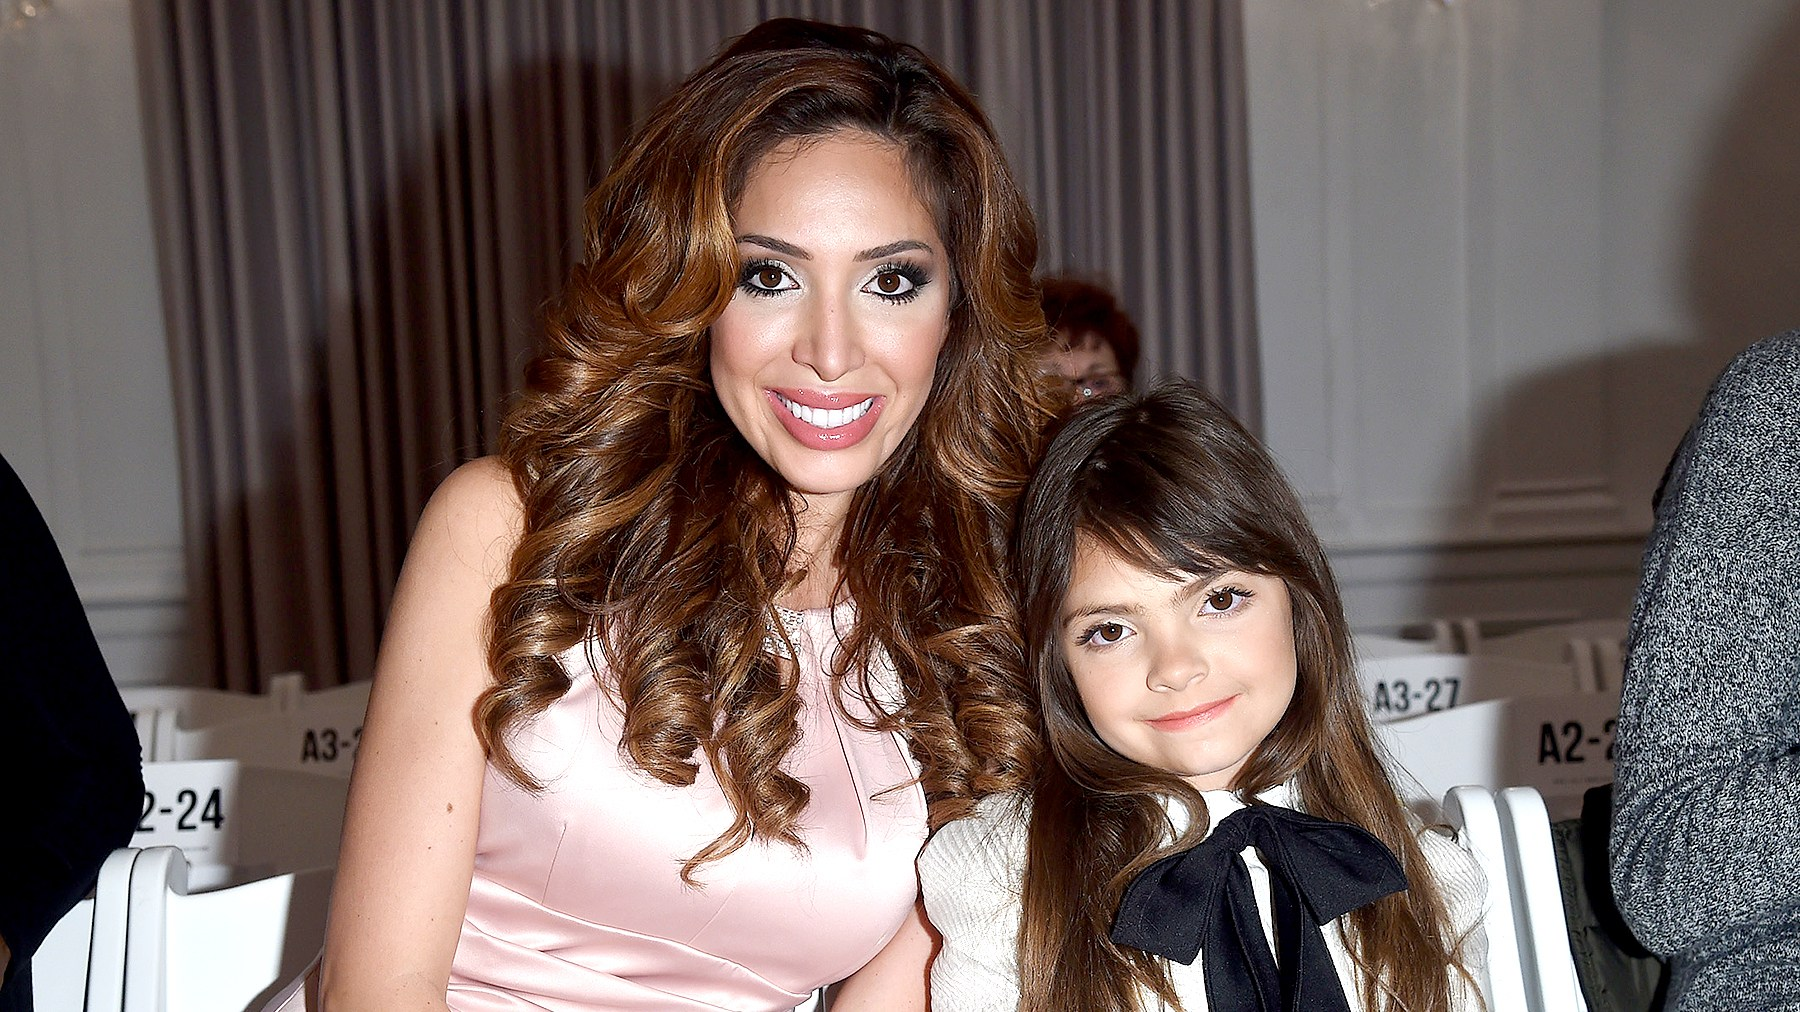 Farrah Abraham and her daughter Sophia Abraham attends Michelle Ann Kids + Bound By the Crown Couture Children's Wear fashion show during Fall 2016 New York Fashion Week on February 13, 2016 in New York City.